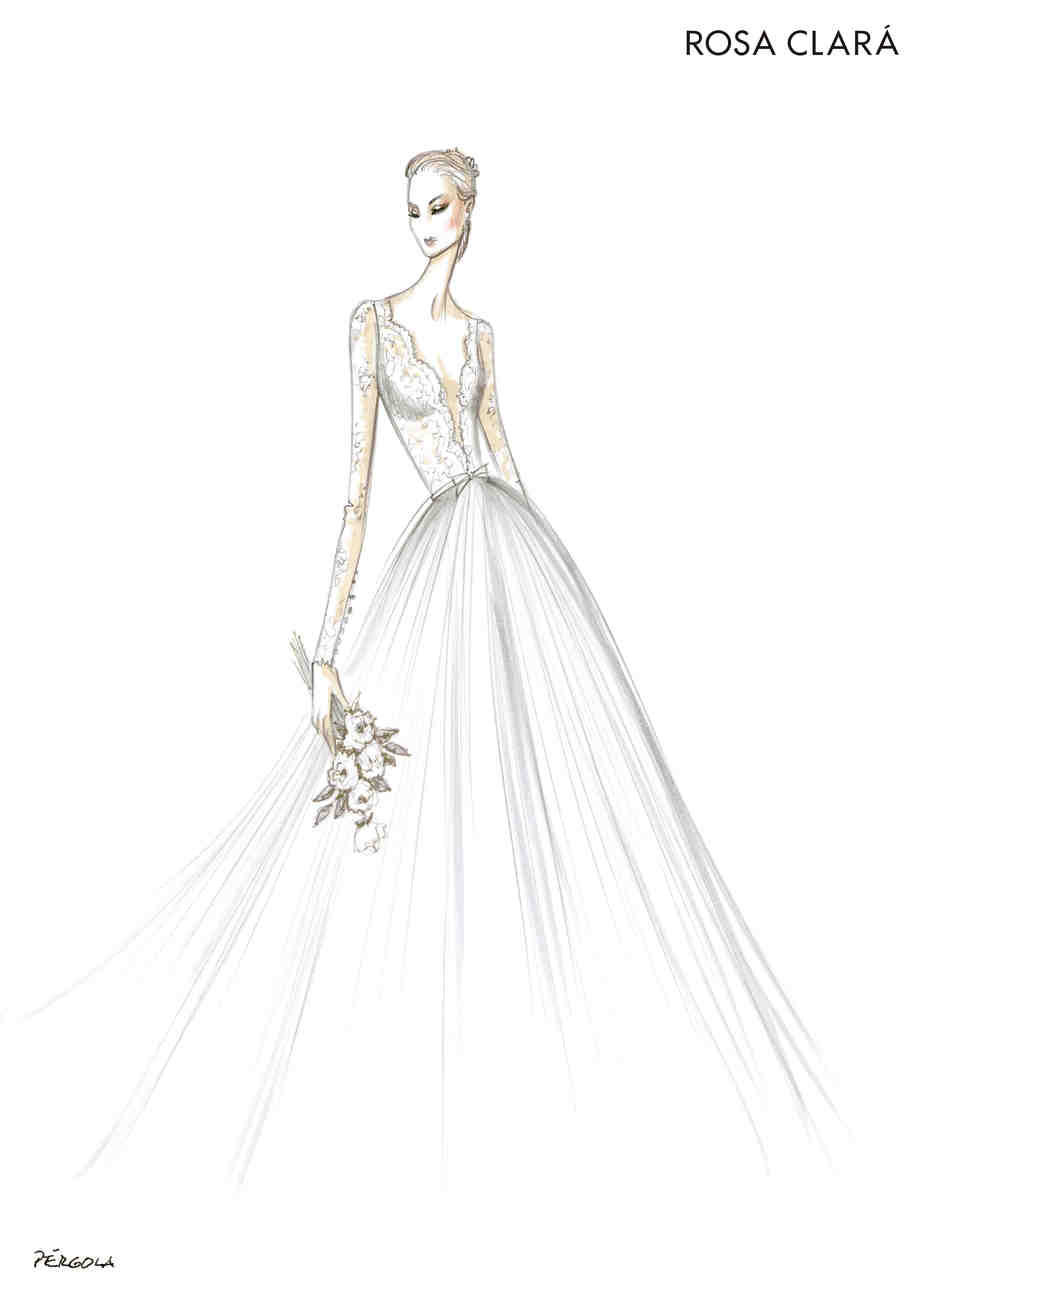 rosa clara wedding dress sketch